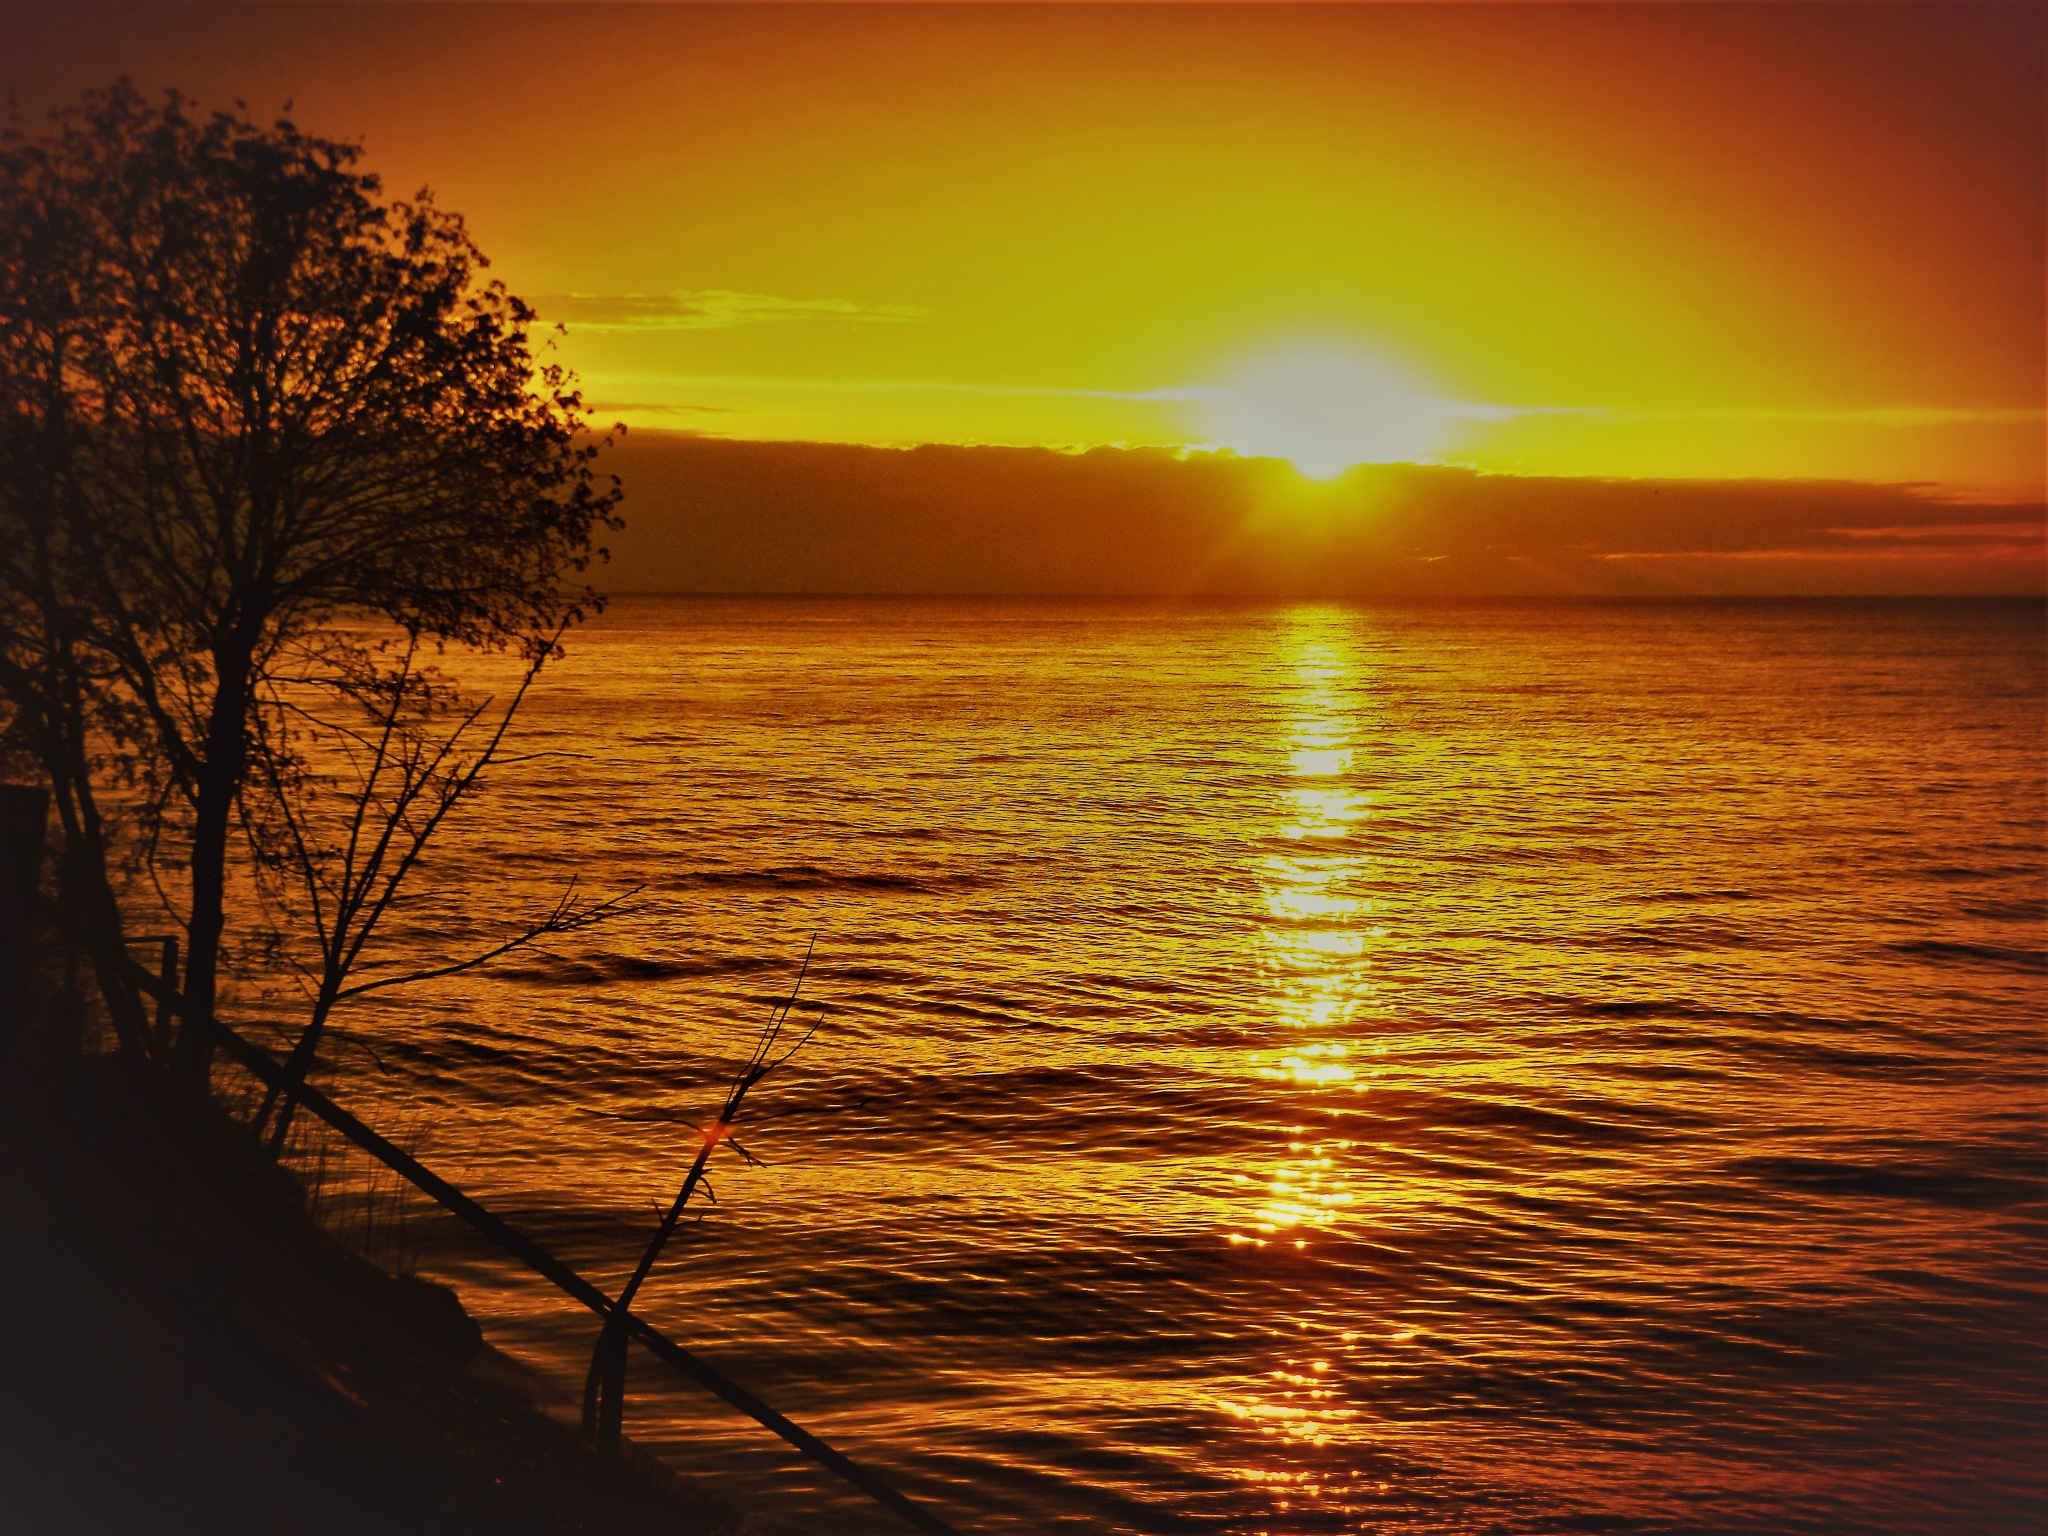 ANOTHER BEAUTIFUL SUNSET ON LAKE ONTARIO IN LYNDONVILLE, NY by Dawn Hoffmeister